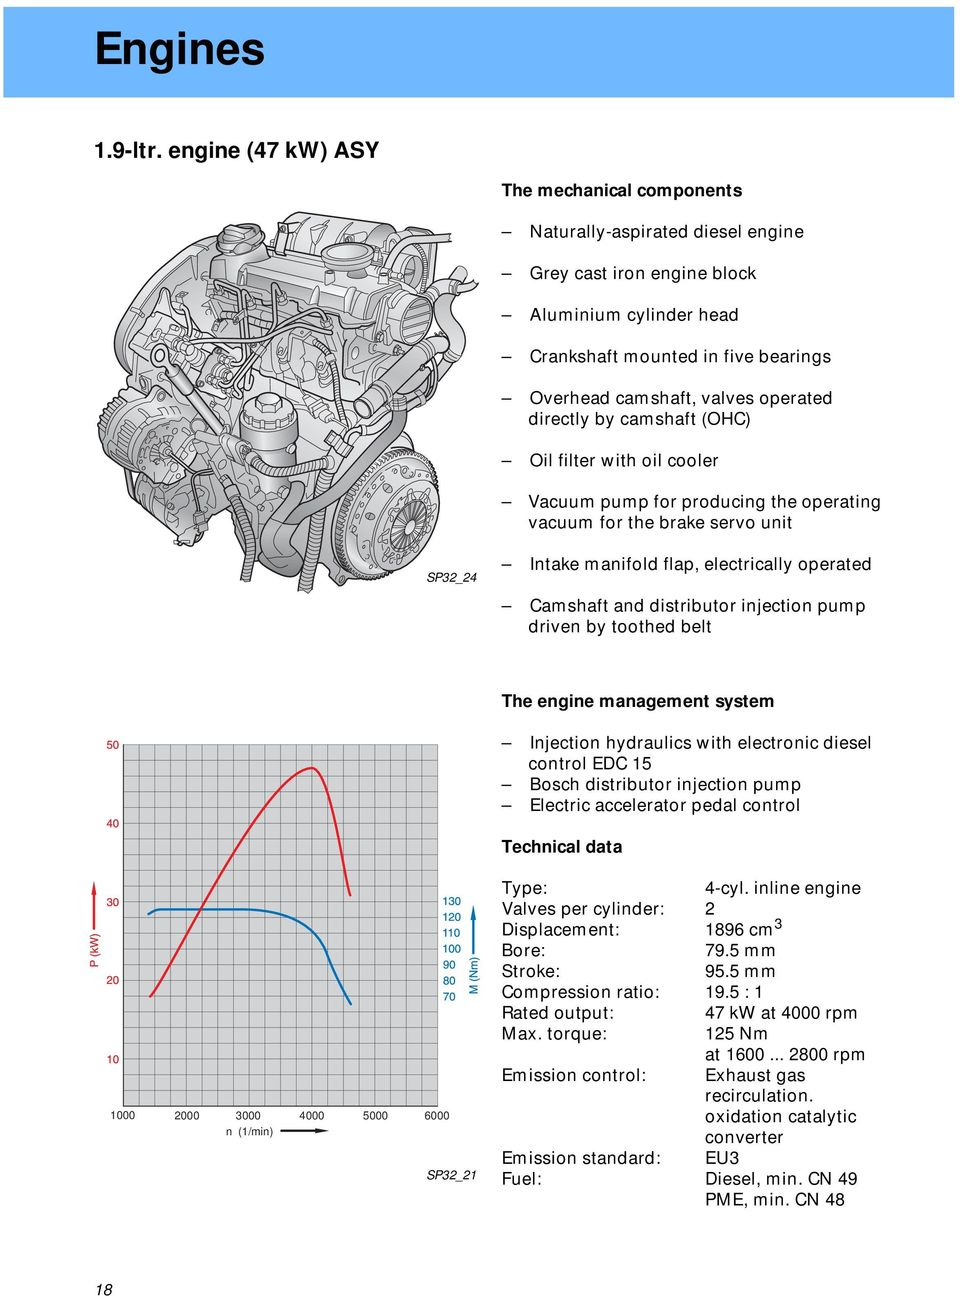 engine gearbox combinations pdf operated directly by camshaft ohc oil filter oil cooler vacuum pump for producing